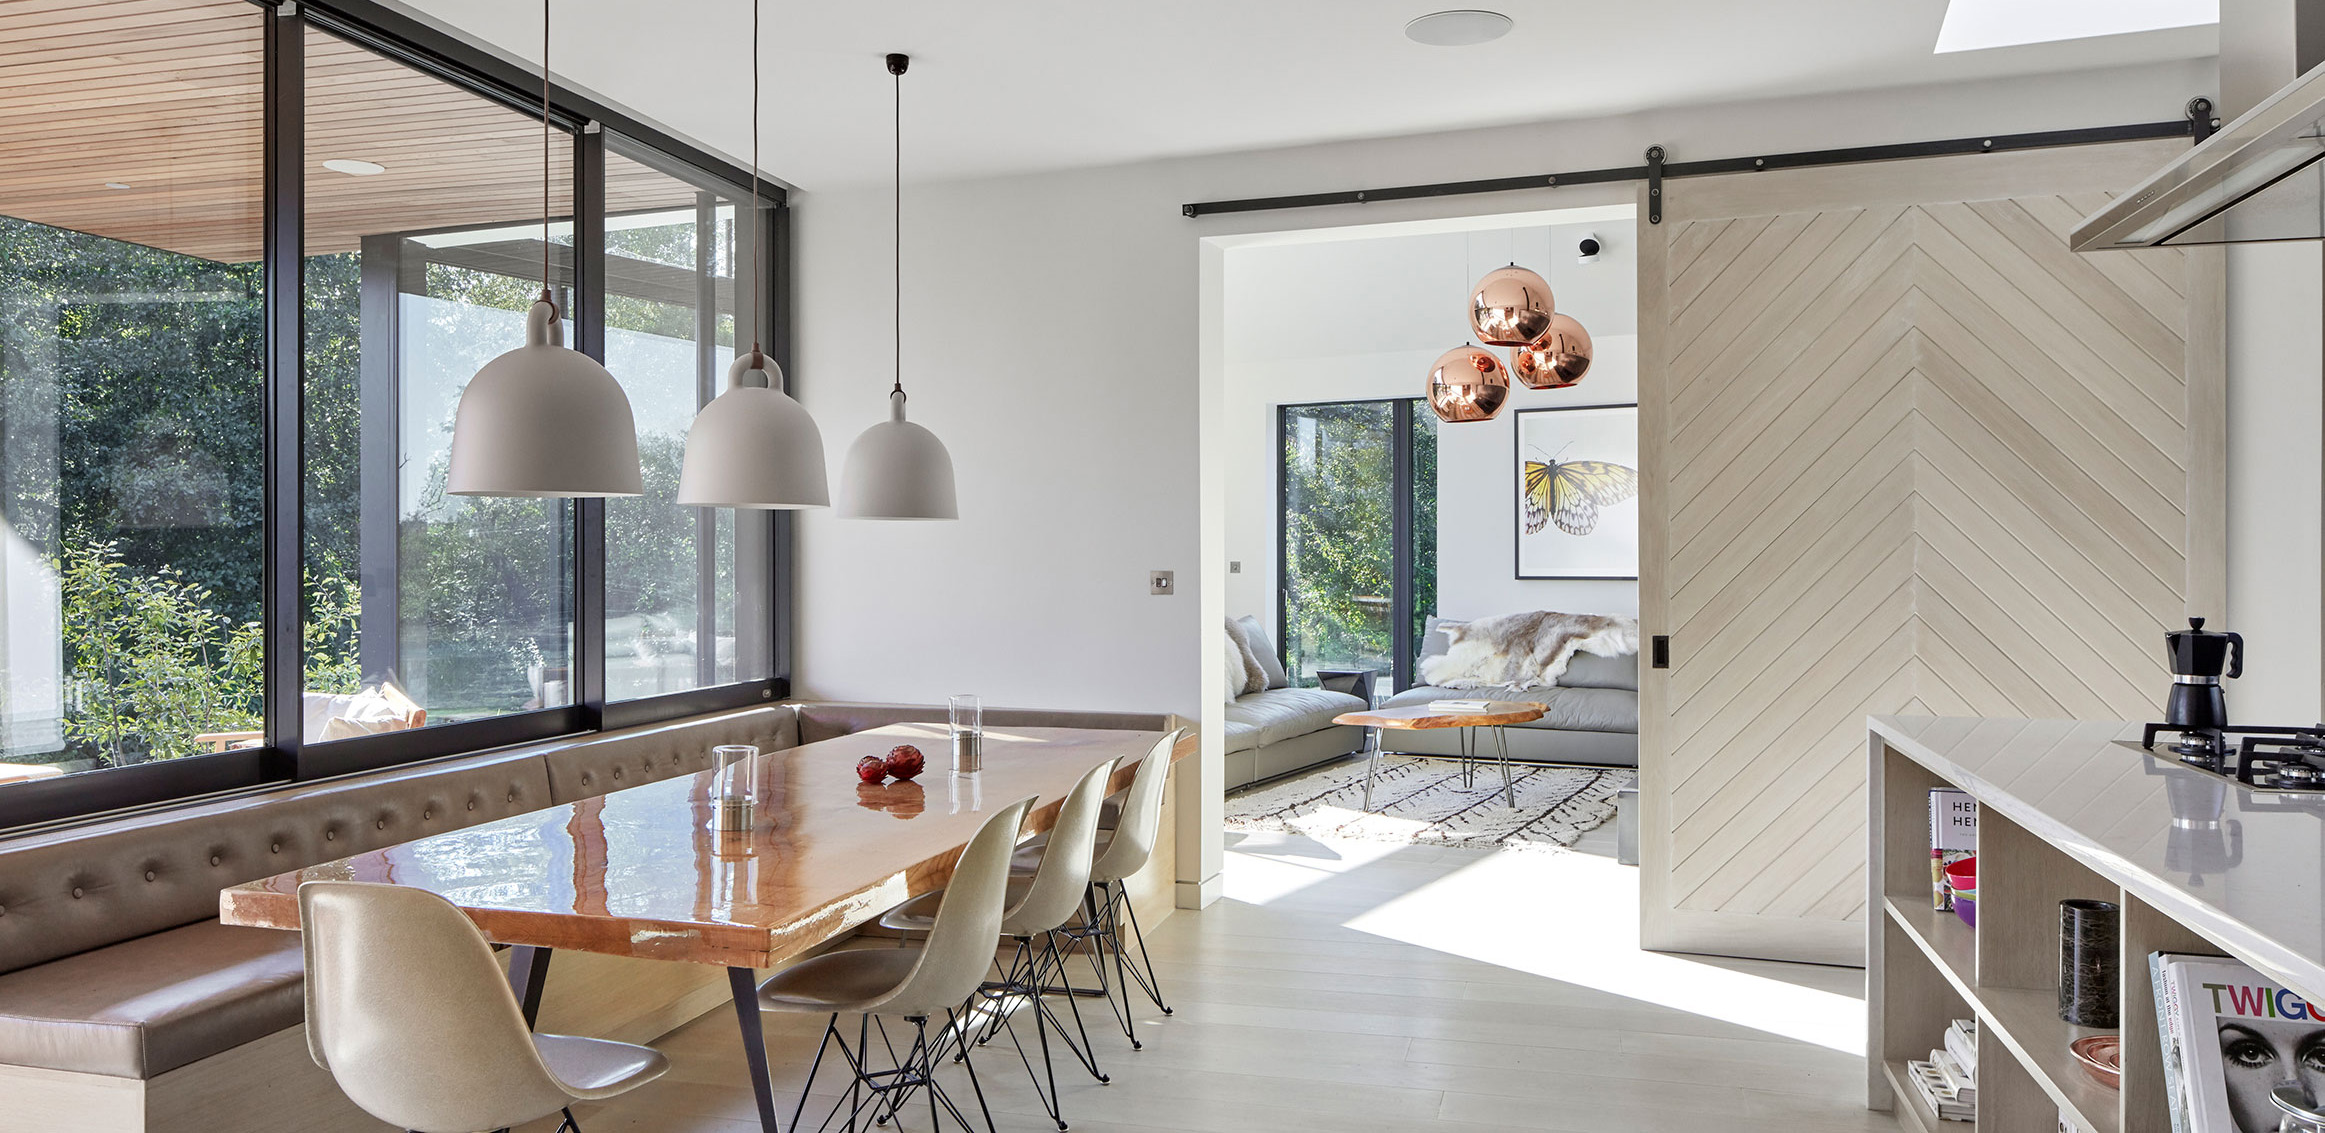 Axel-interior-sliding-barn-door-hardware-in-raw-steel-finish-installed-in-modern-dining-room